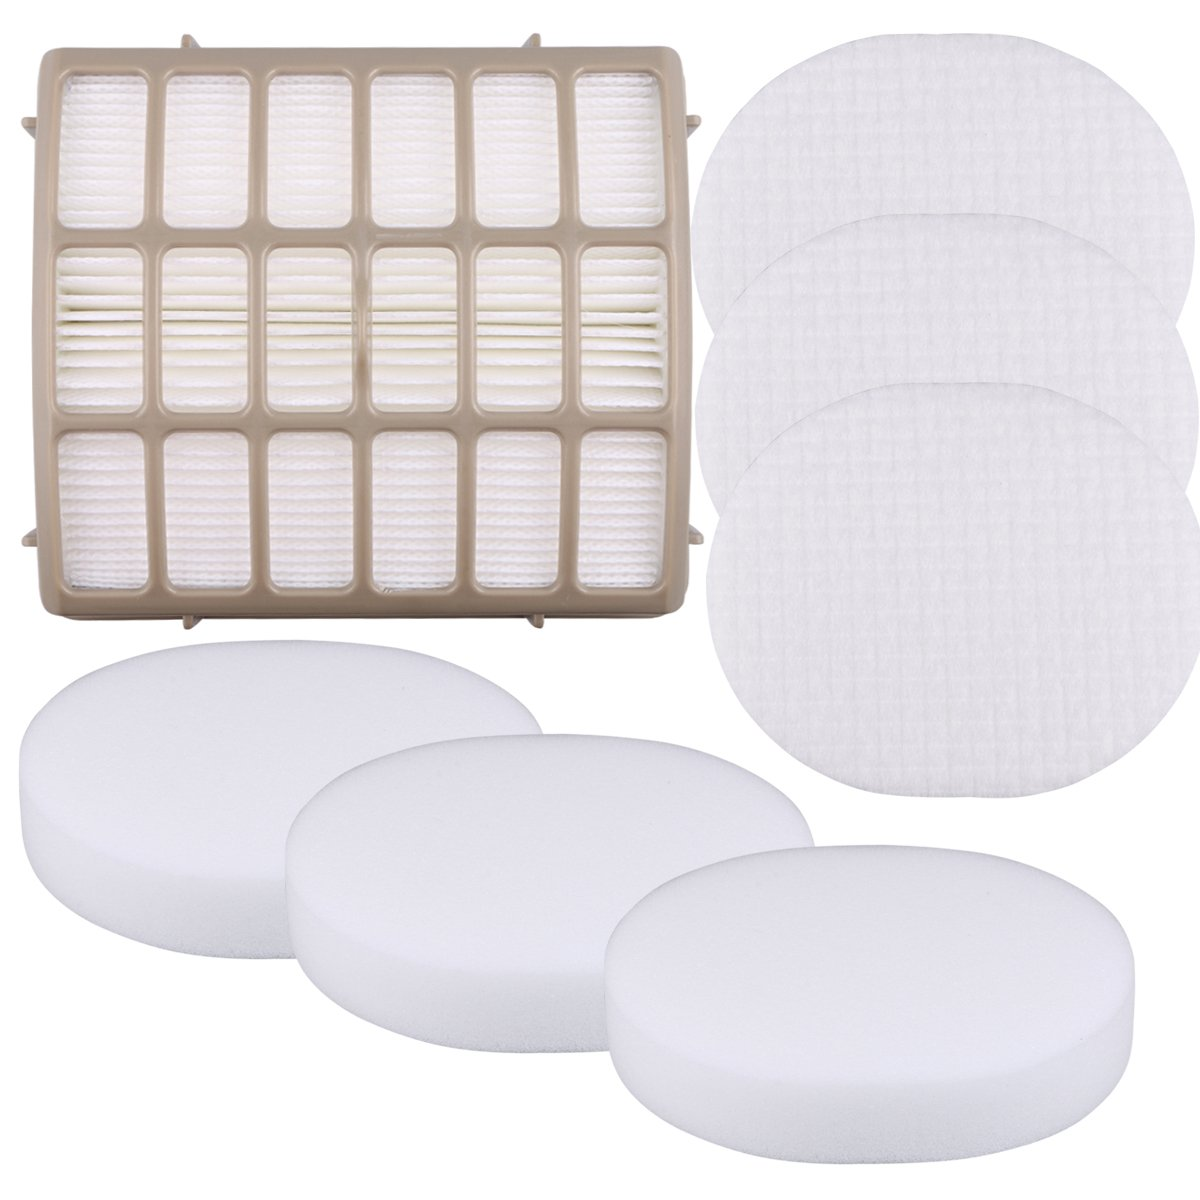 Aunifun 3 Foam Filters + 1 HEPA Replacement Vacuum Filter for Shark Navigator Professional NV70, NV80, NVC80C, UV420 Shark Rotator Professional XL Capacity NV90 Replacement Parts XFF80 XHF80